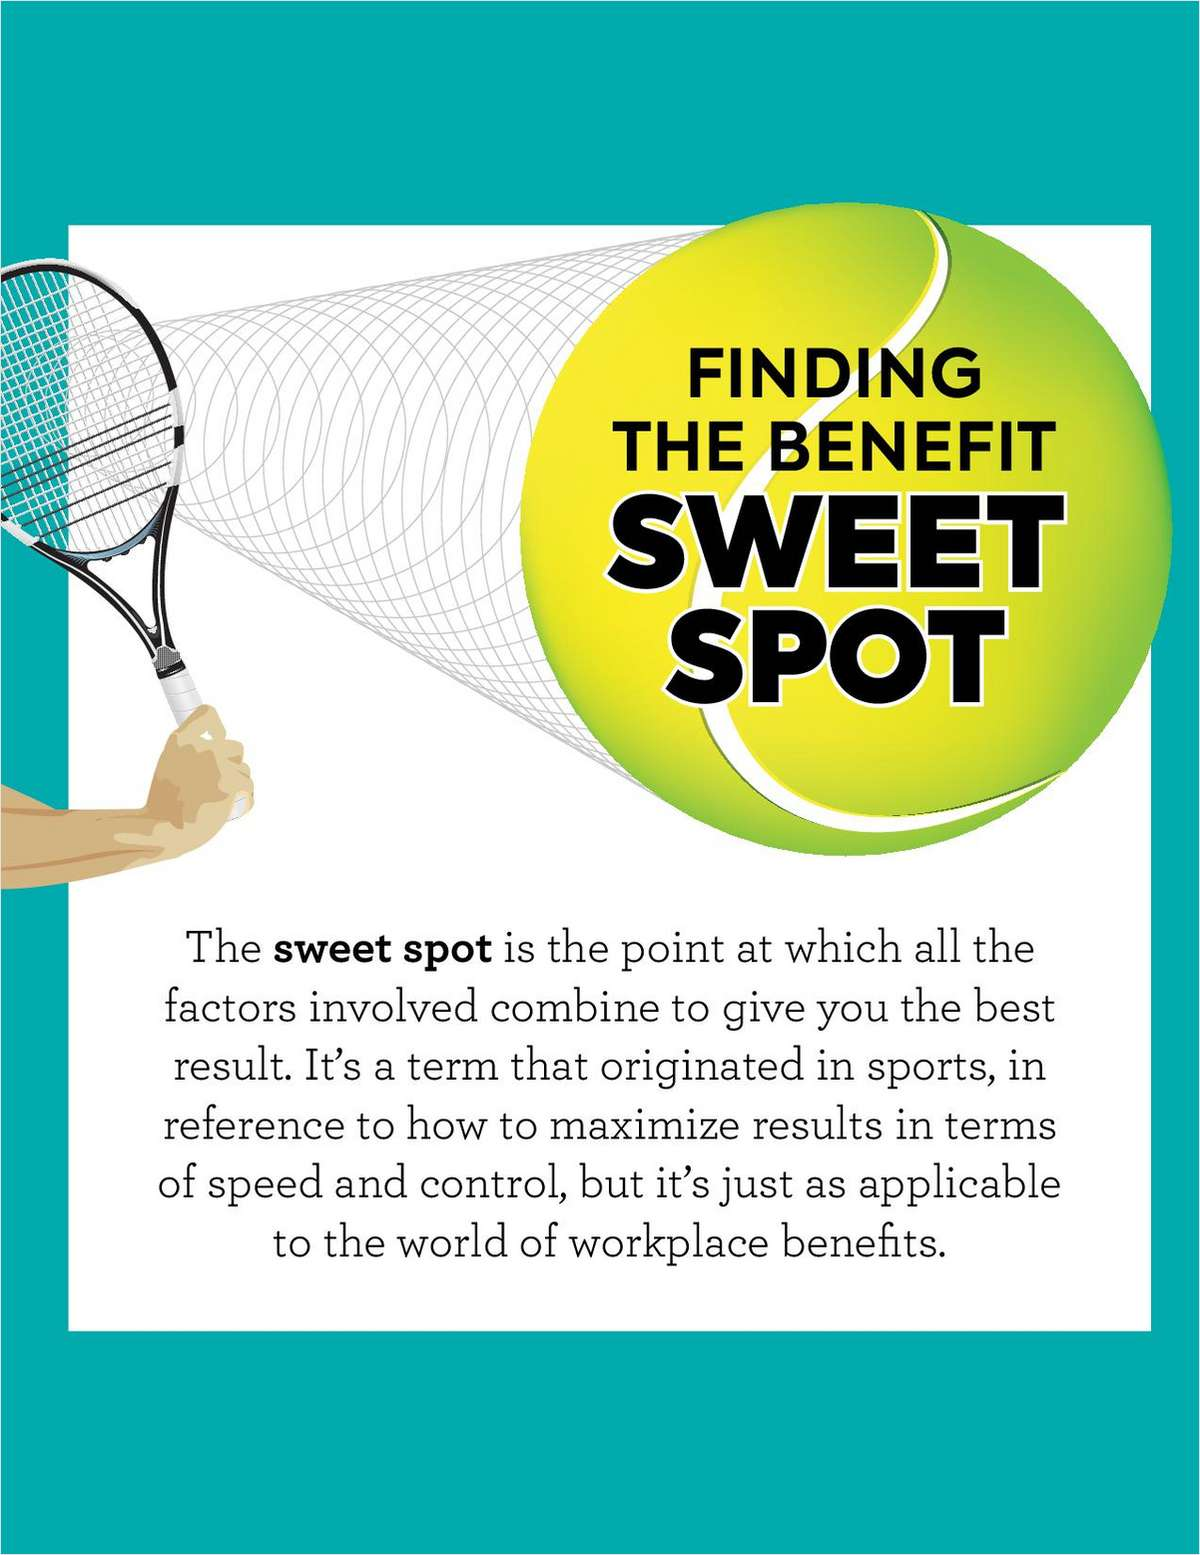 Finding the Benefit Sweet Spot